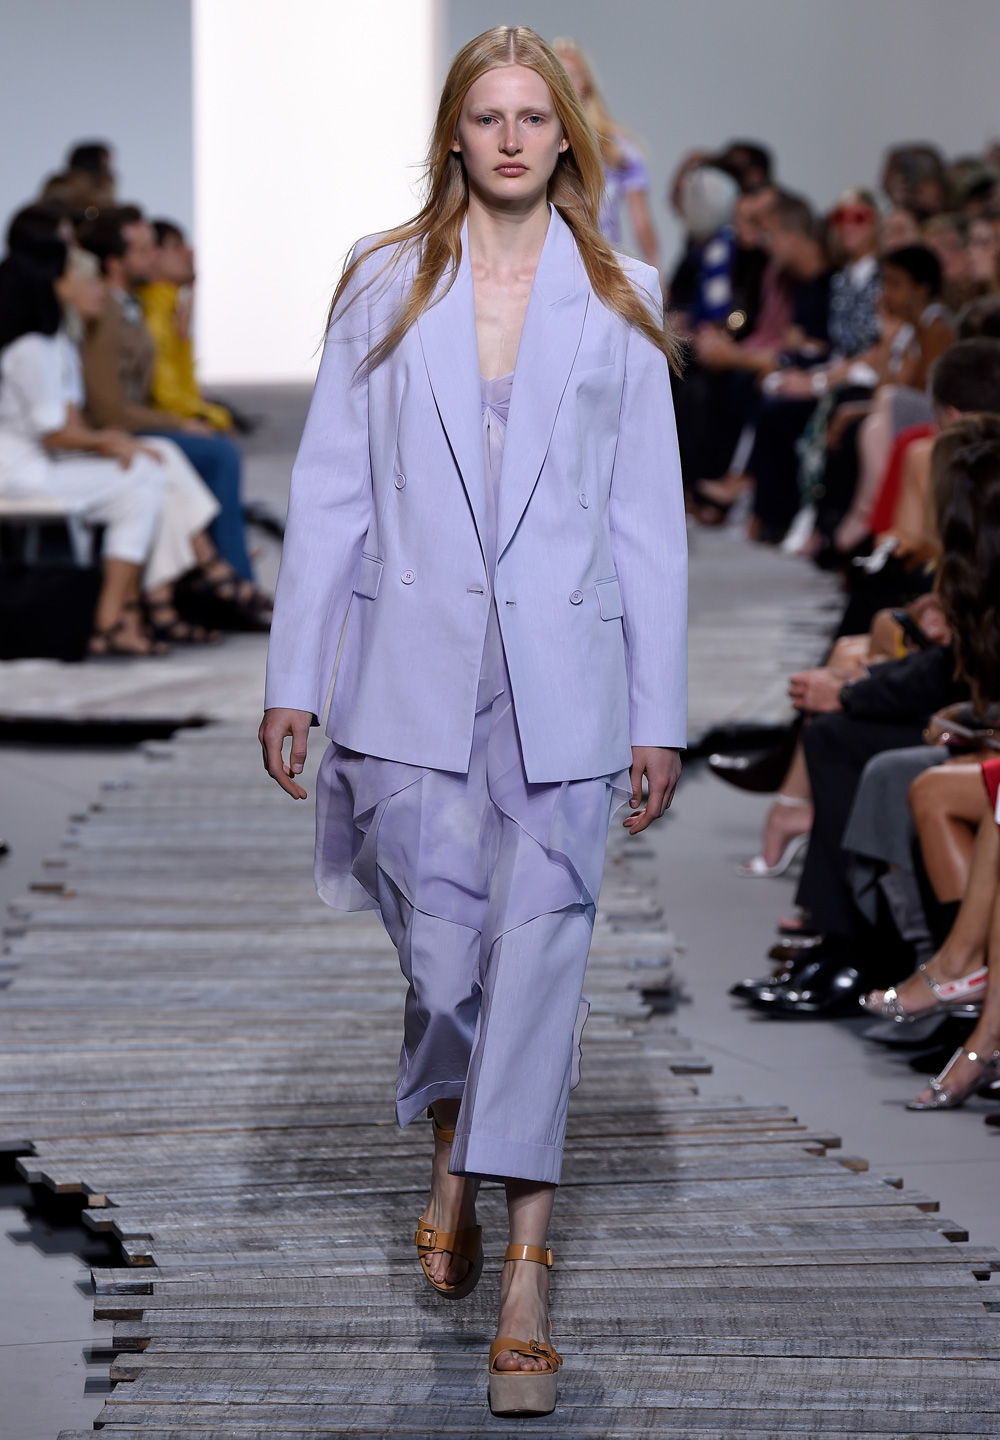 Spring summer fashion trends for 2018 - Top style trends for spring 21